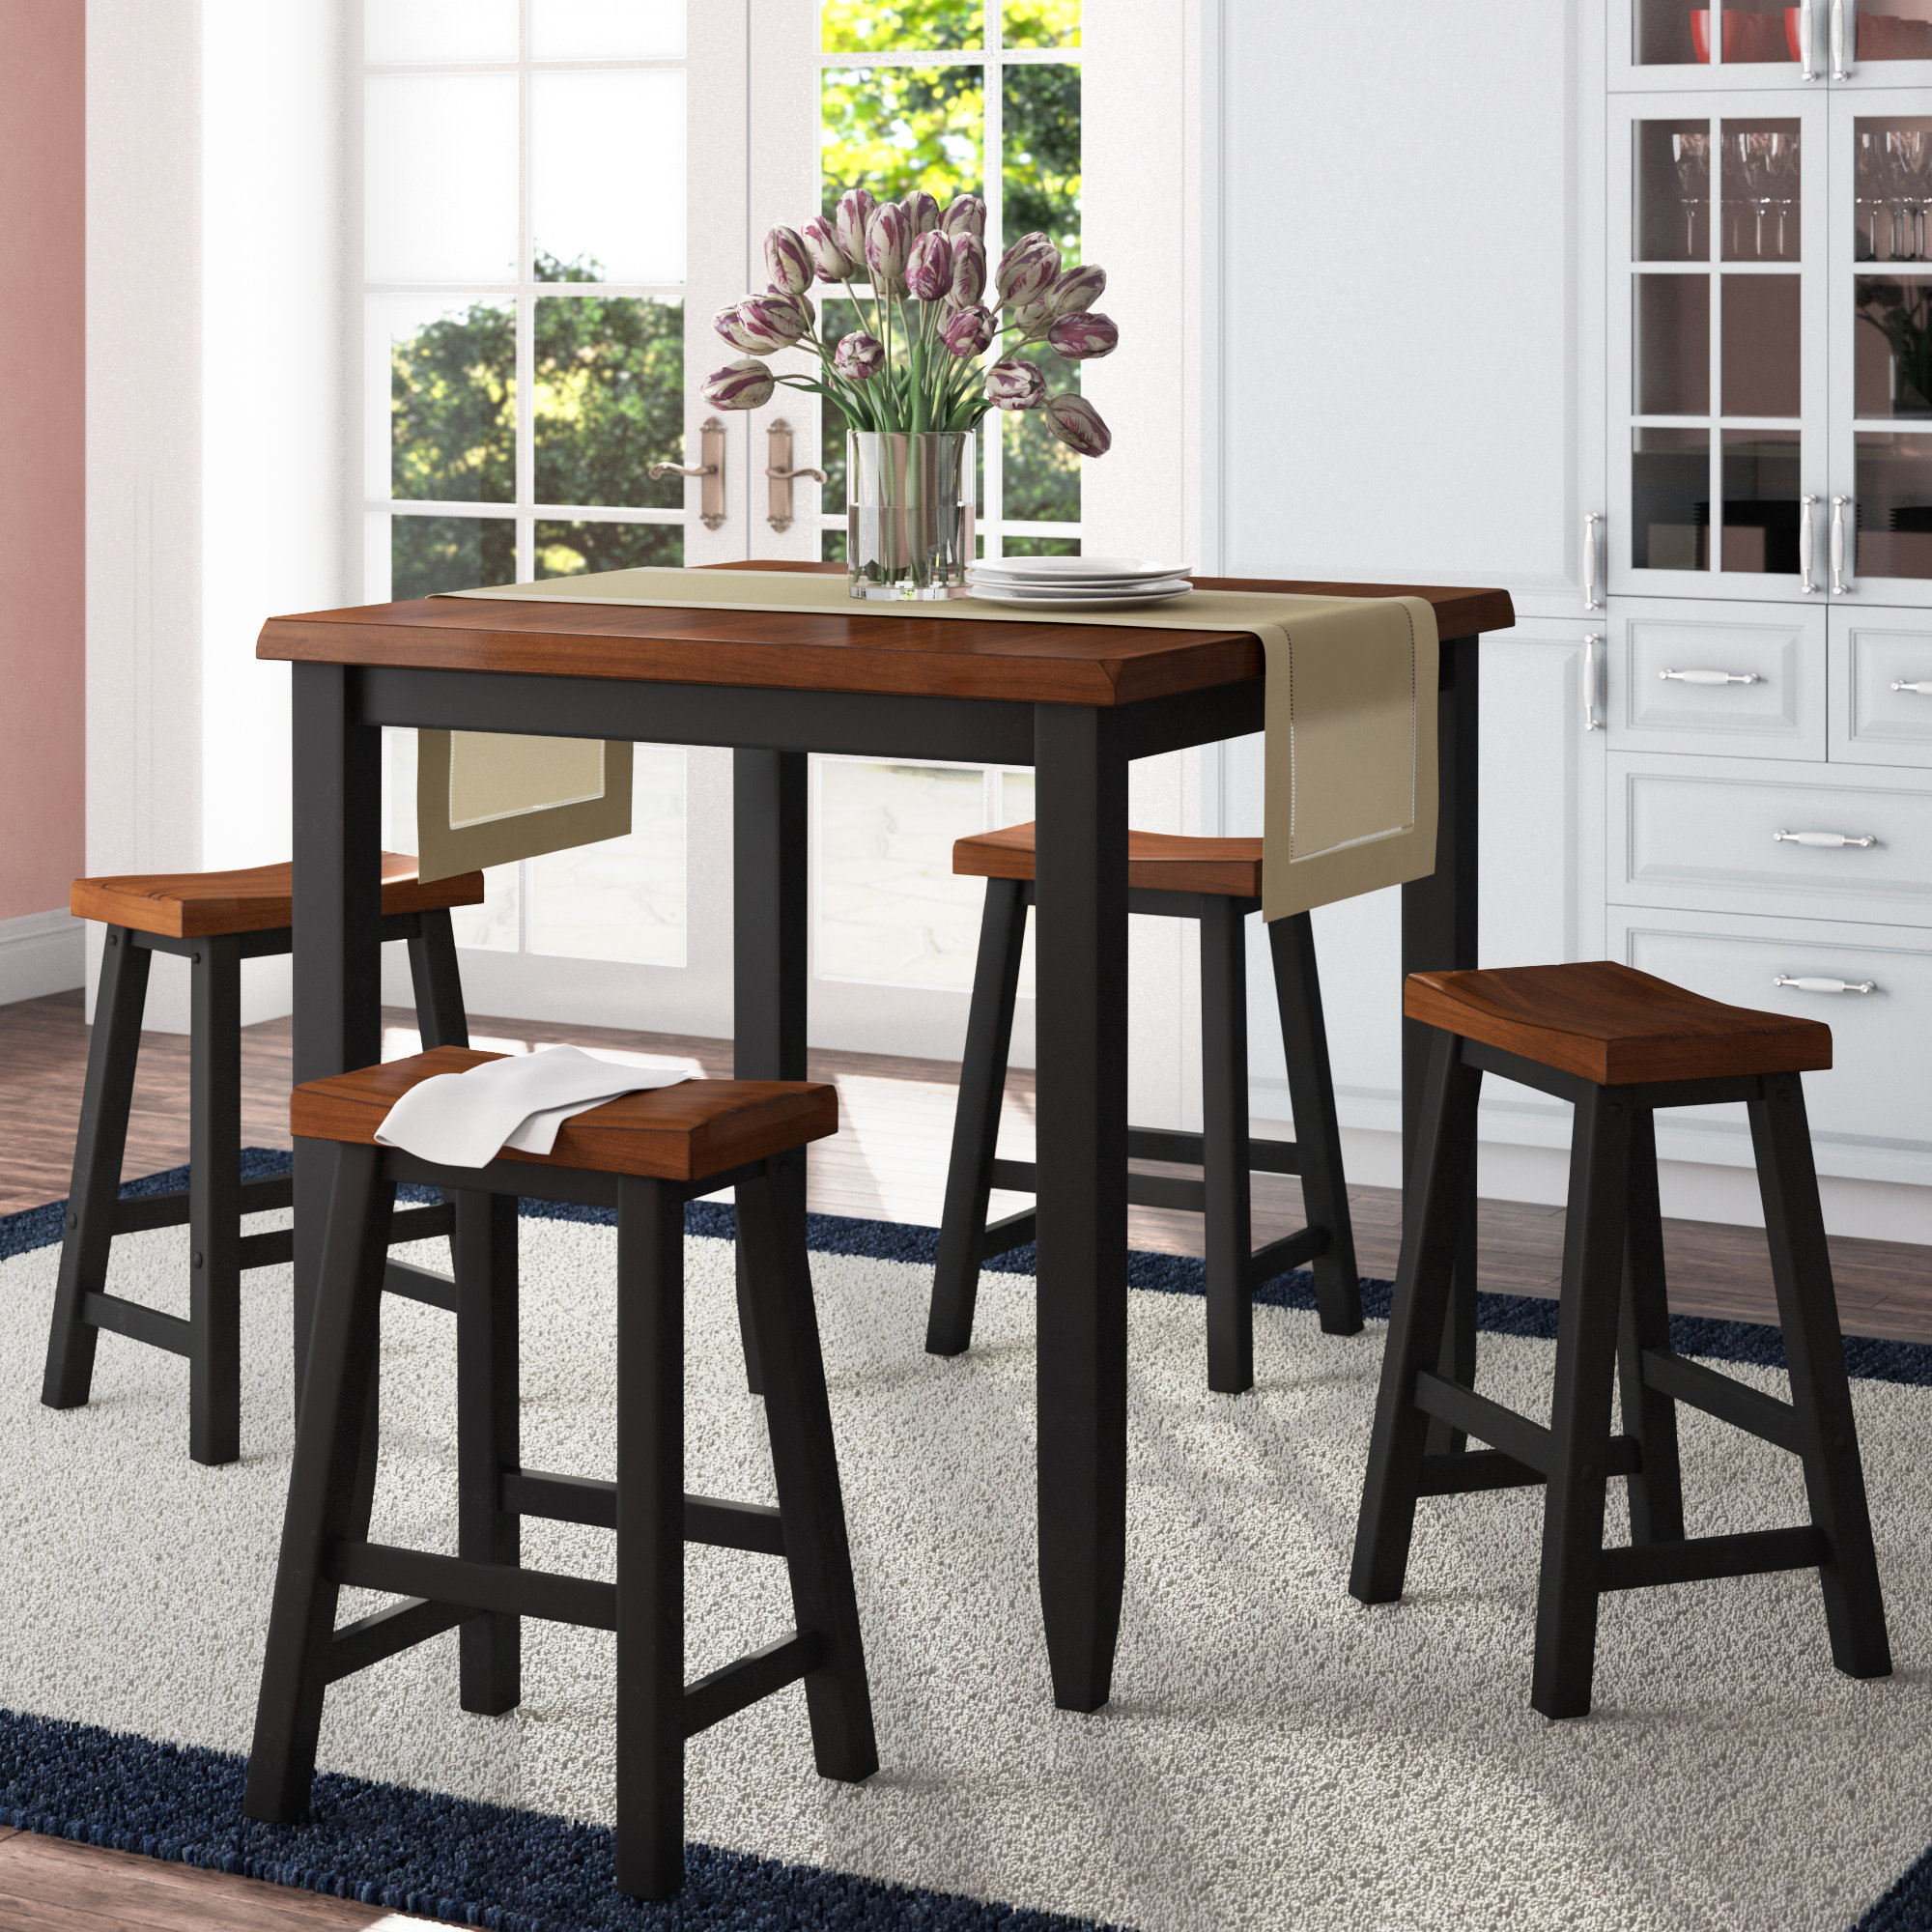 Simmons Casegoods Ruggerio 5 Piece Counter Height Pub Table Set Pertaining To Famous Winsted 4 Piece Counter Height Dining Sets (View 7 of 20)